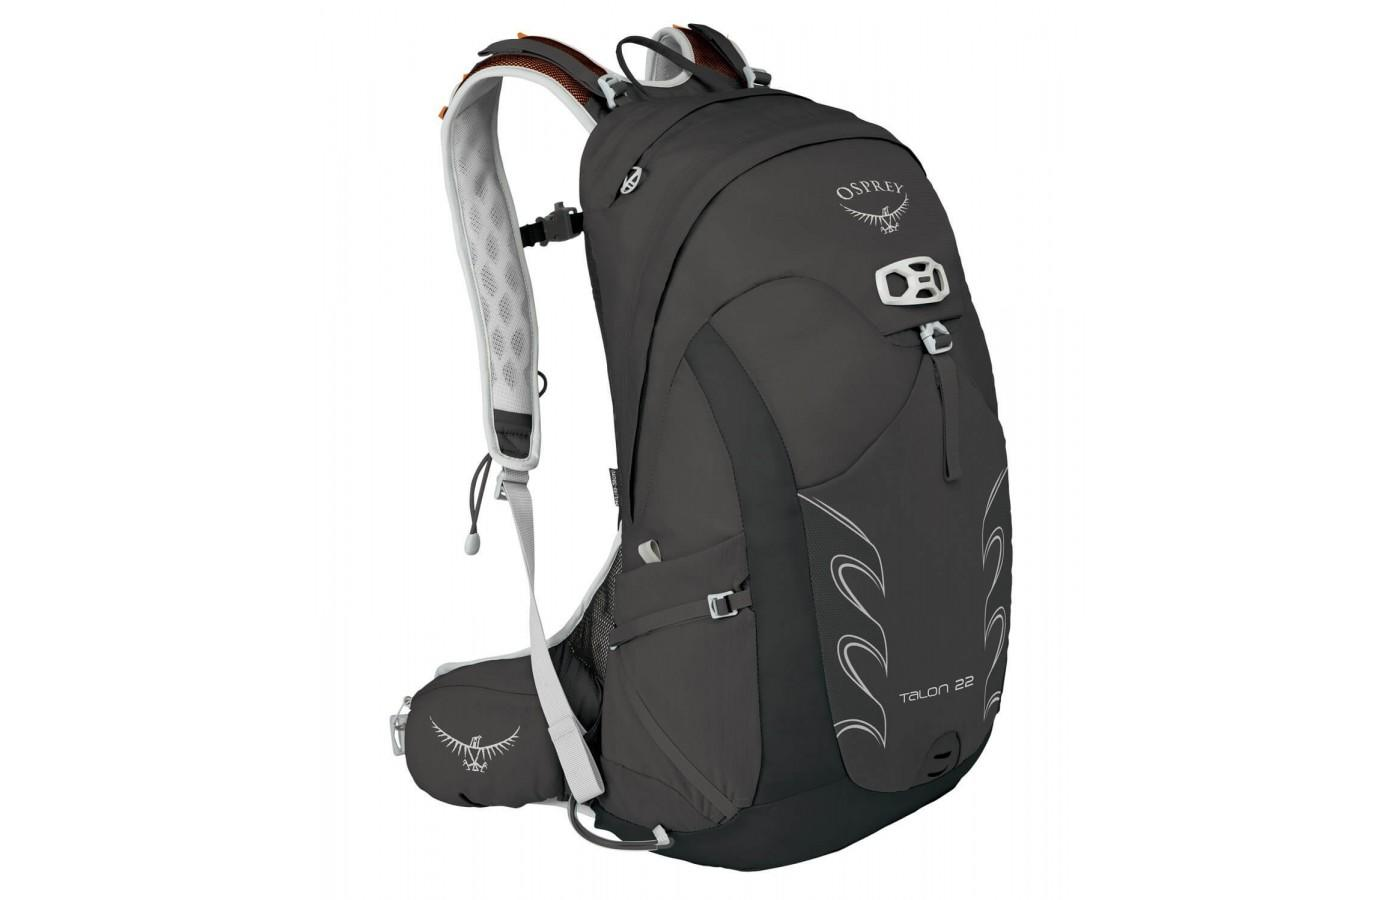 The Osprey Talon 22 features a total of 7 exterior pockets